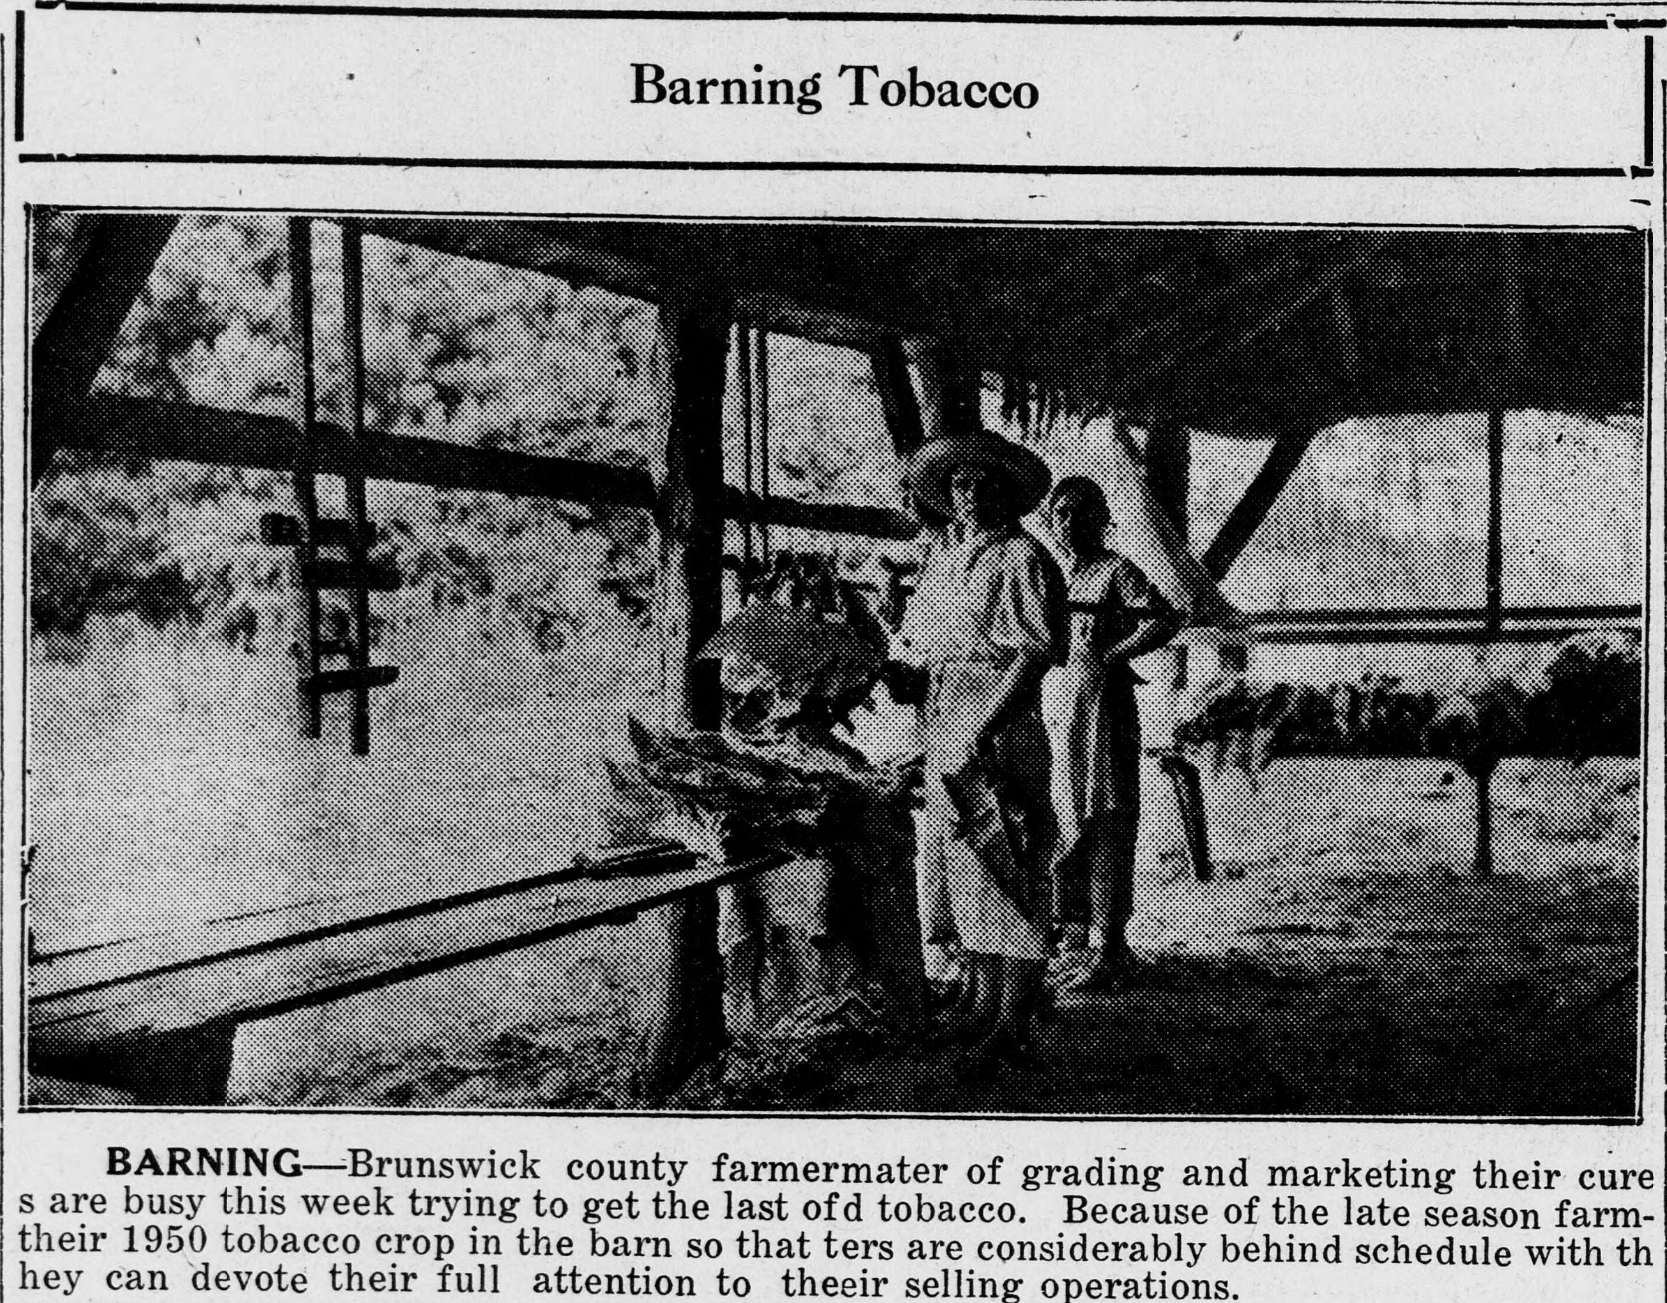 Barning tobacco. Image shows two adults at a table with tobacco.